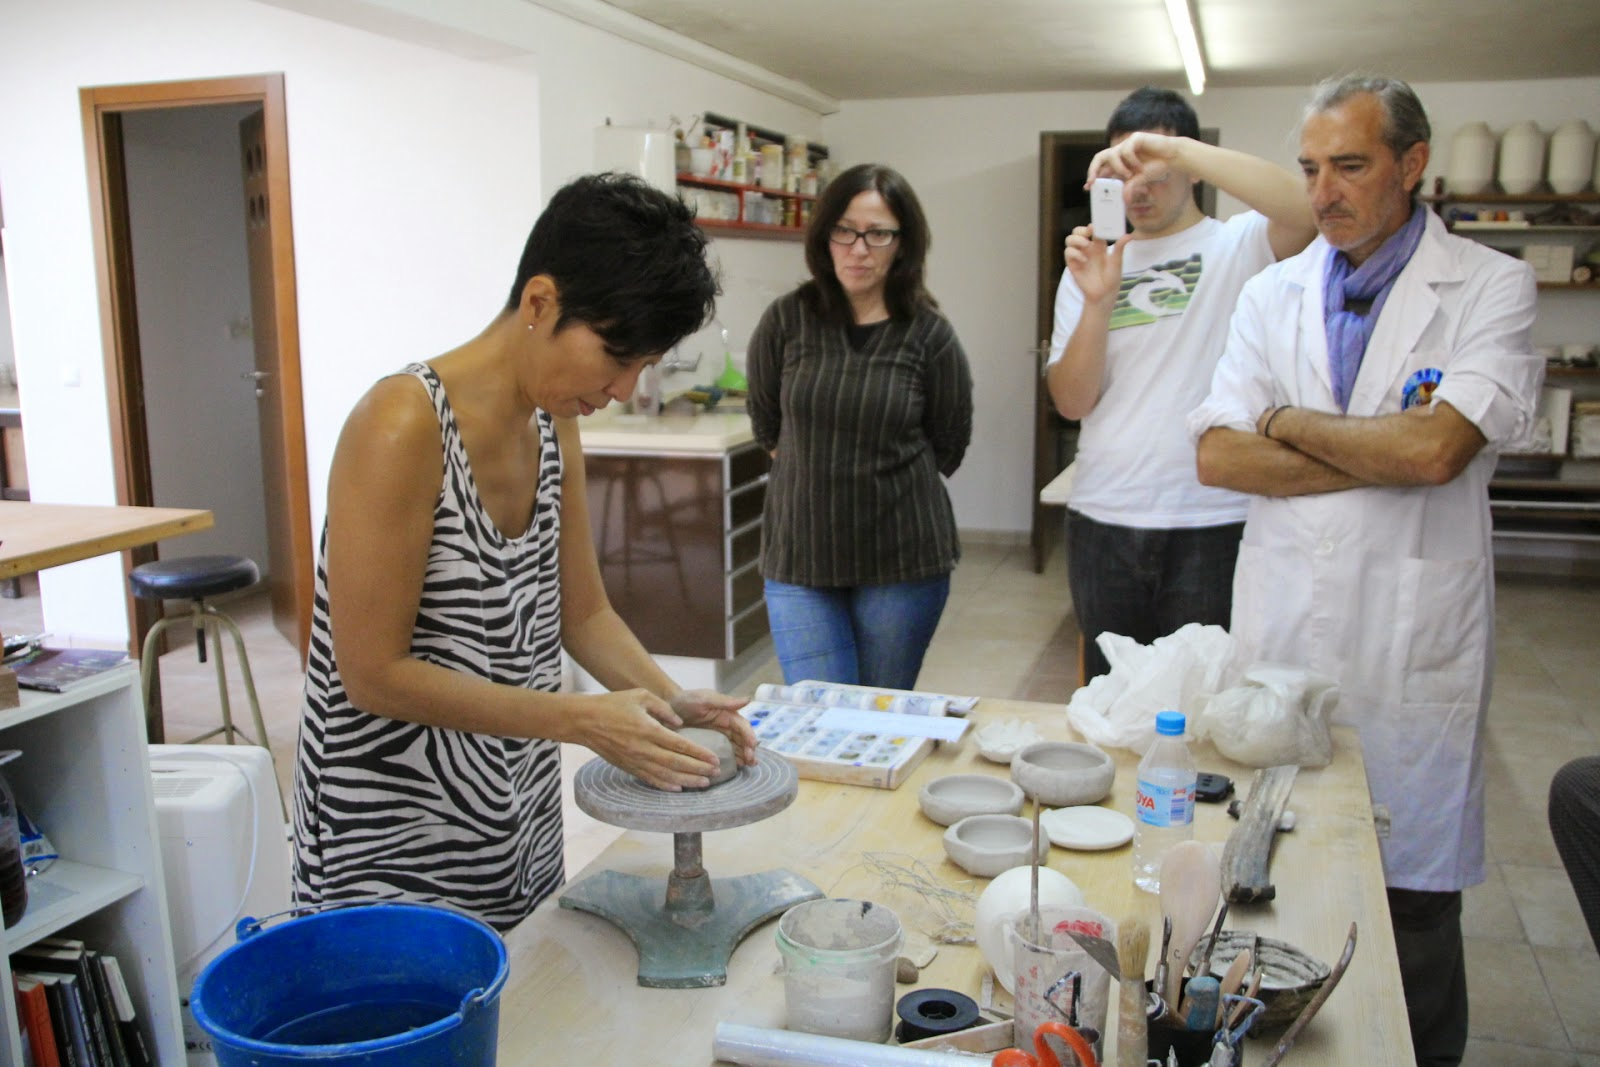 Chisato ceramica fotos y video de segundo curso en for Curso ceramica barcelona